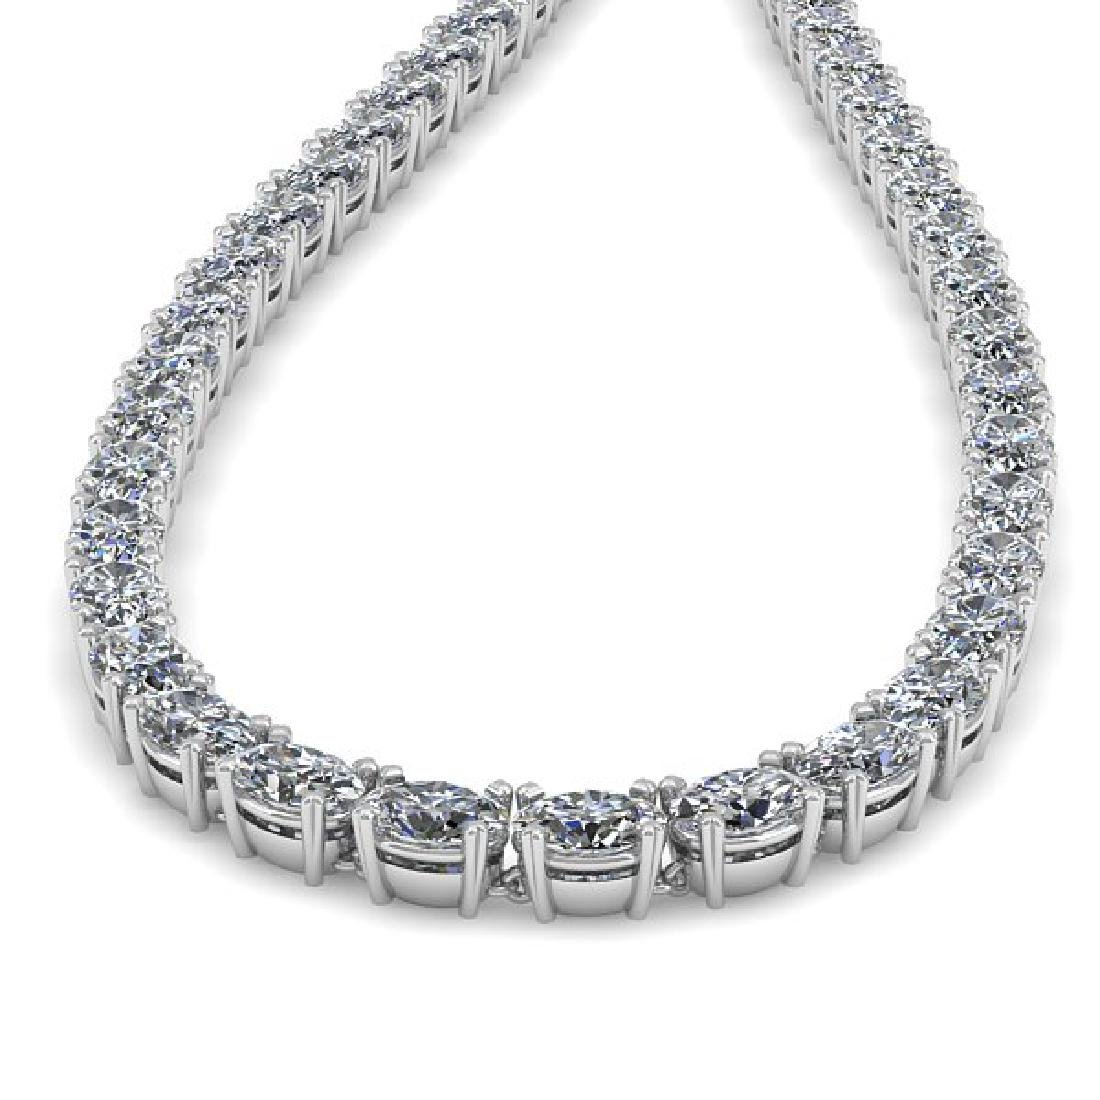 26 CTW Oval Cut Certified SI Diamond Necklace 18K White - 2